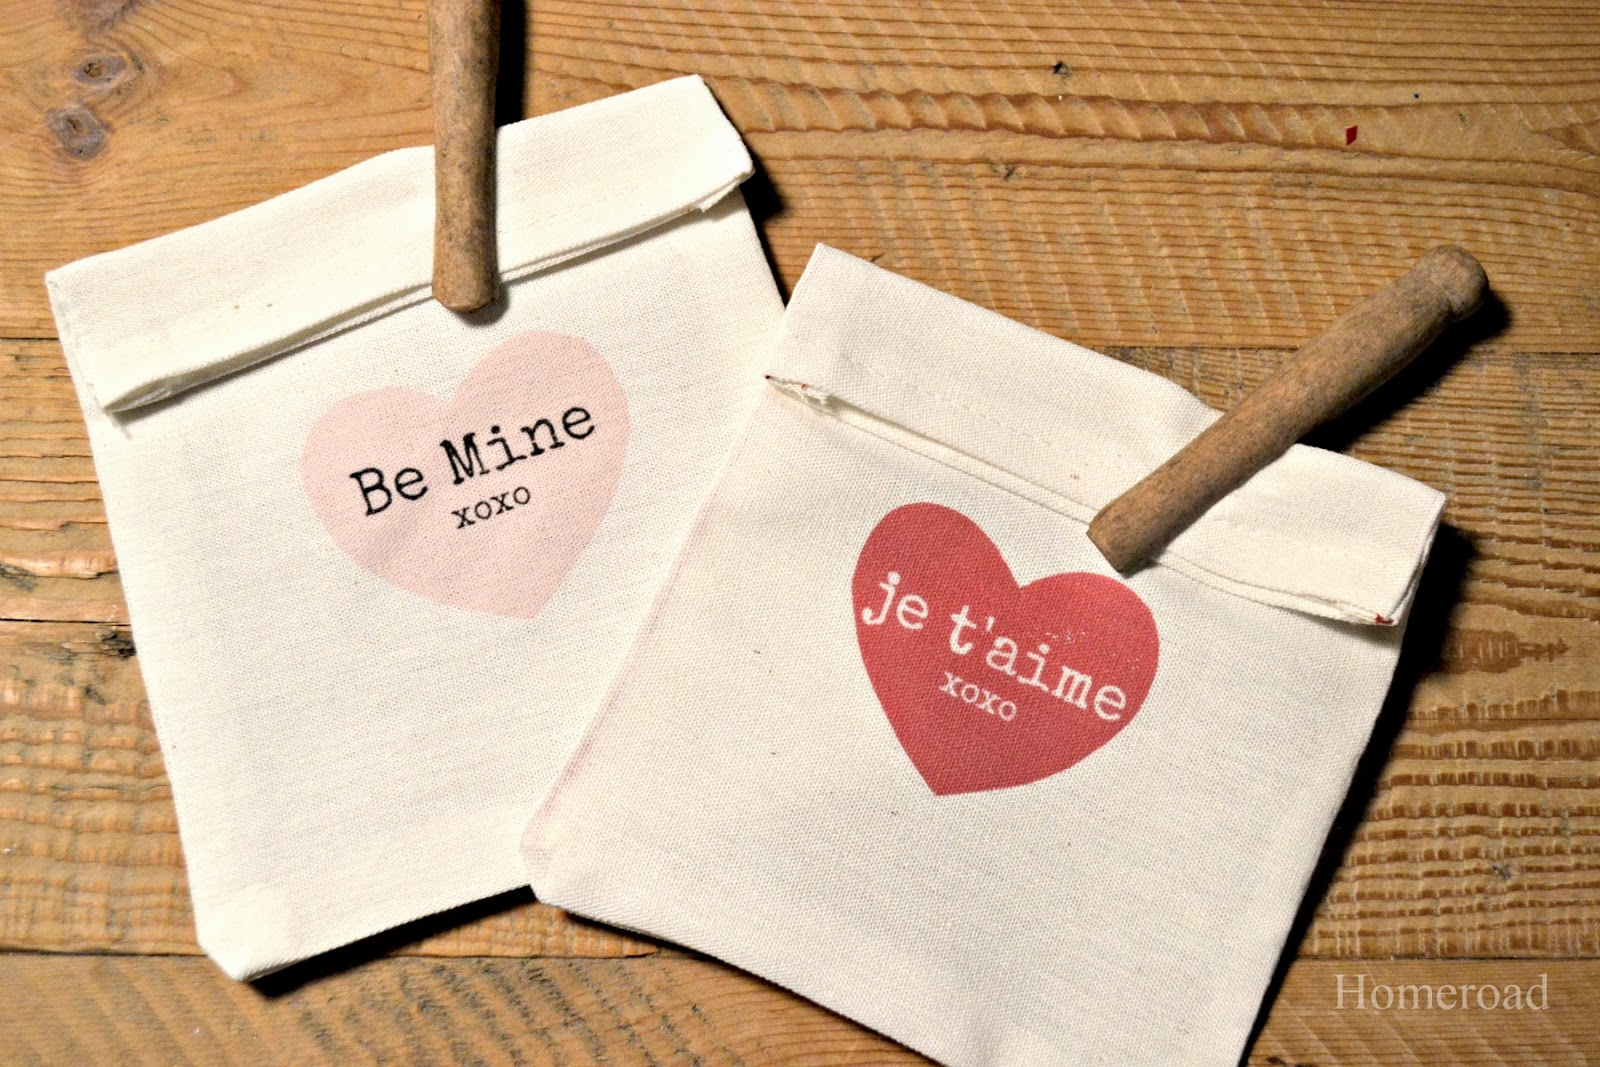 Heart Bags and Transfer Paper www.homeroad.net